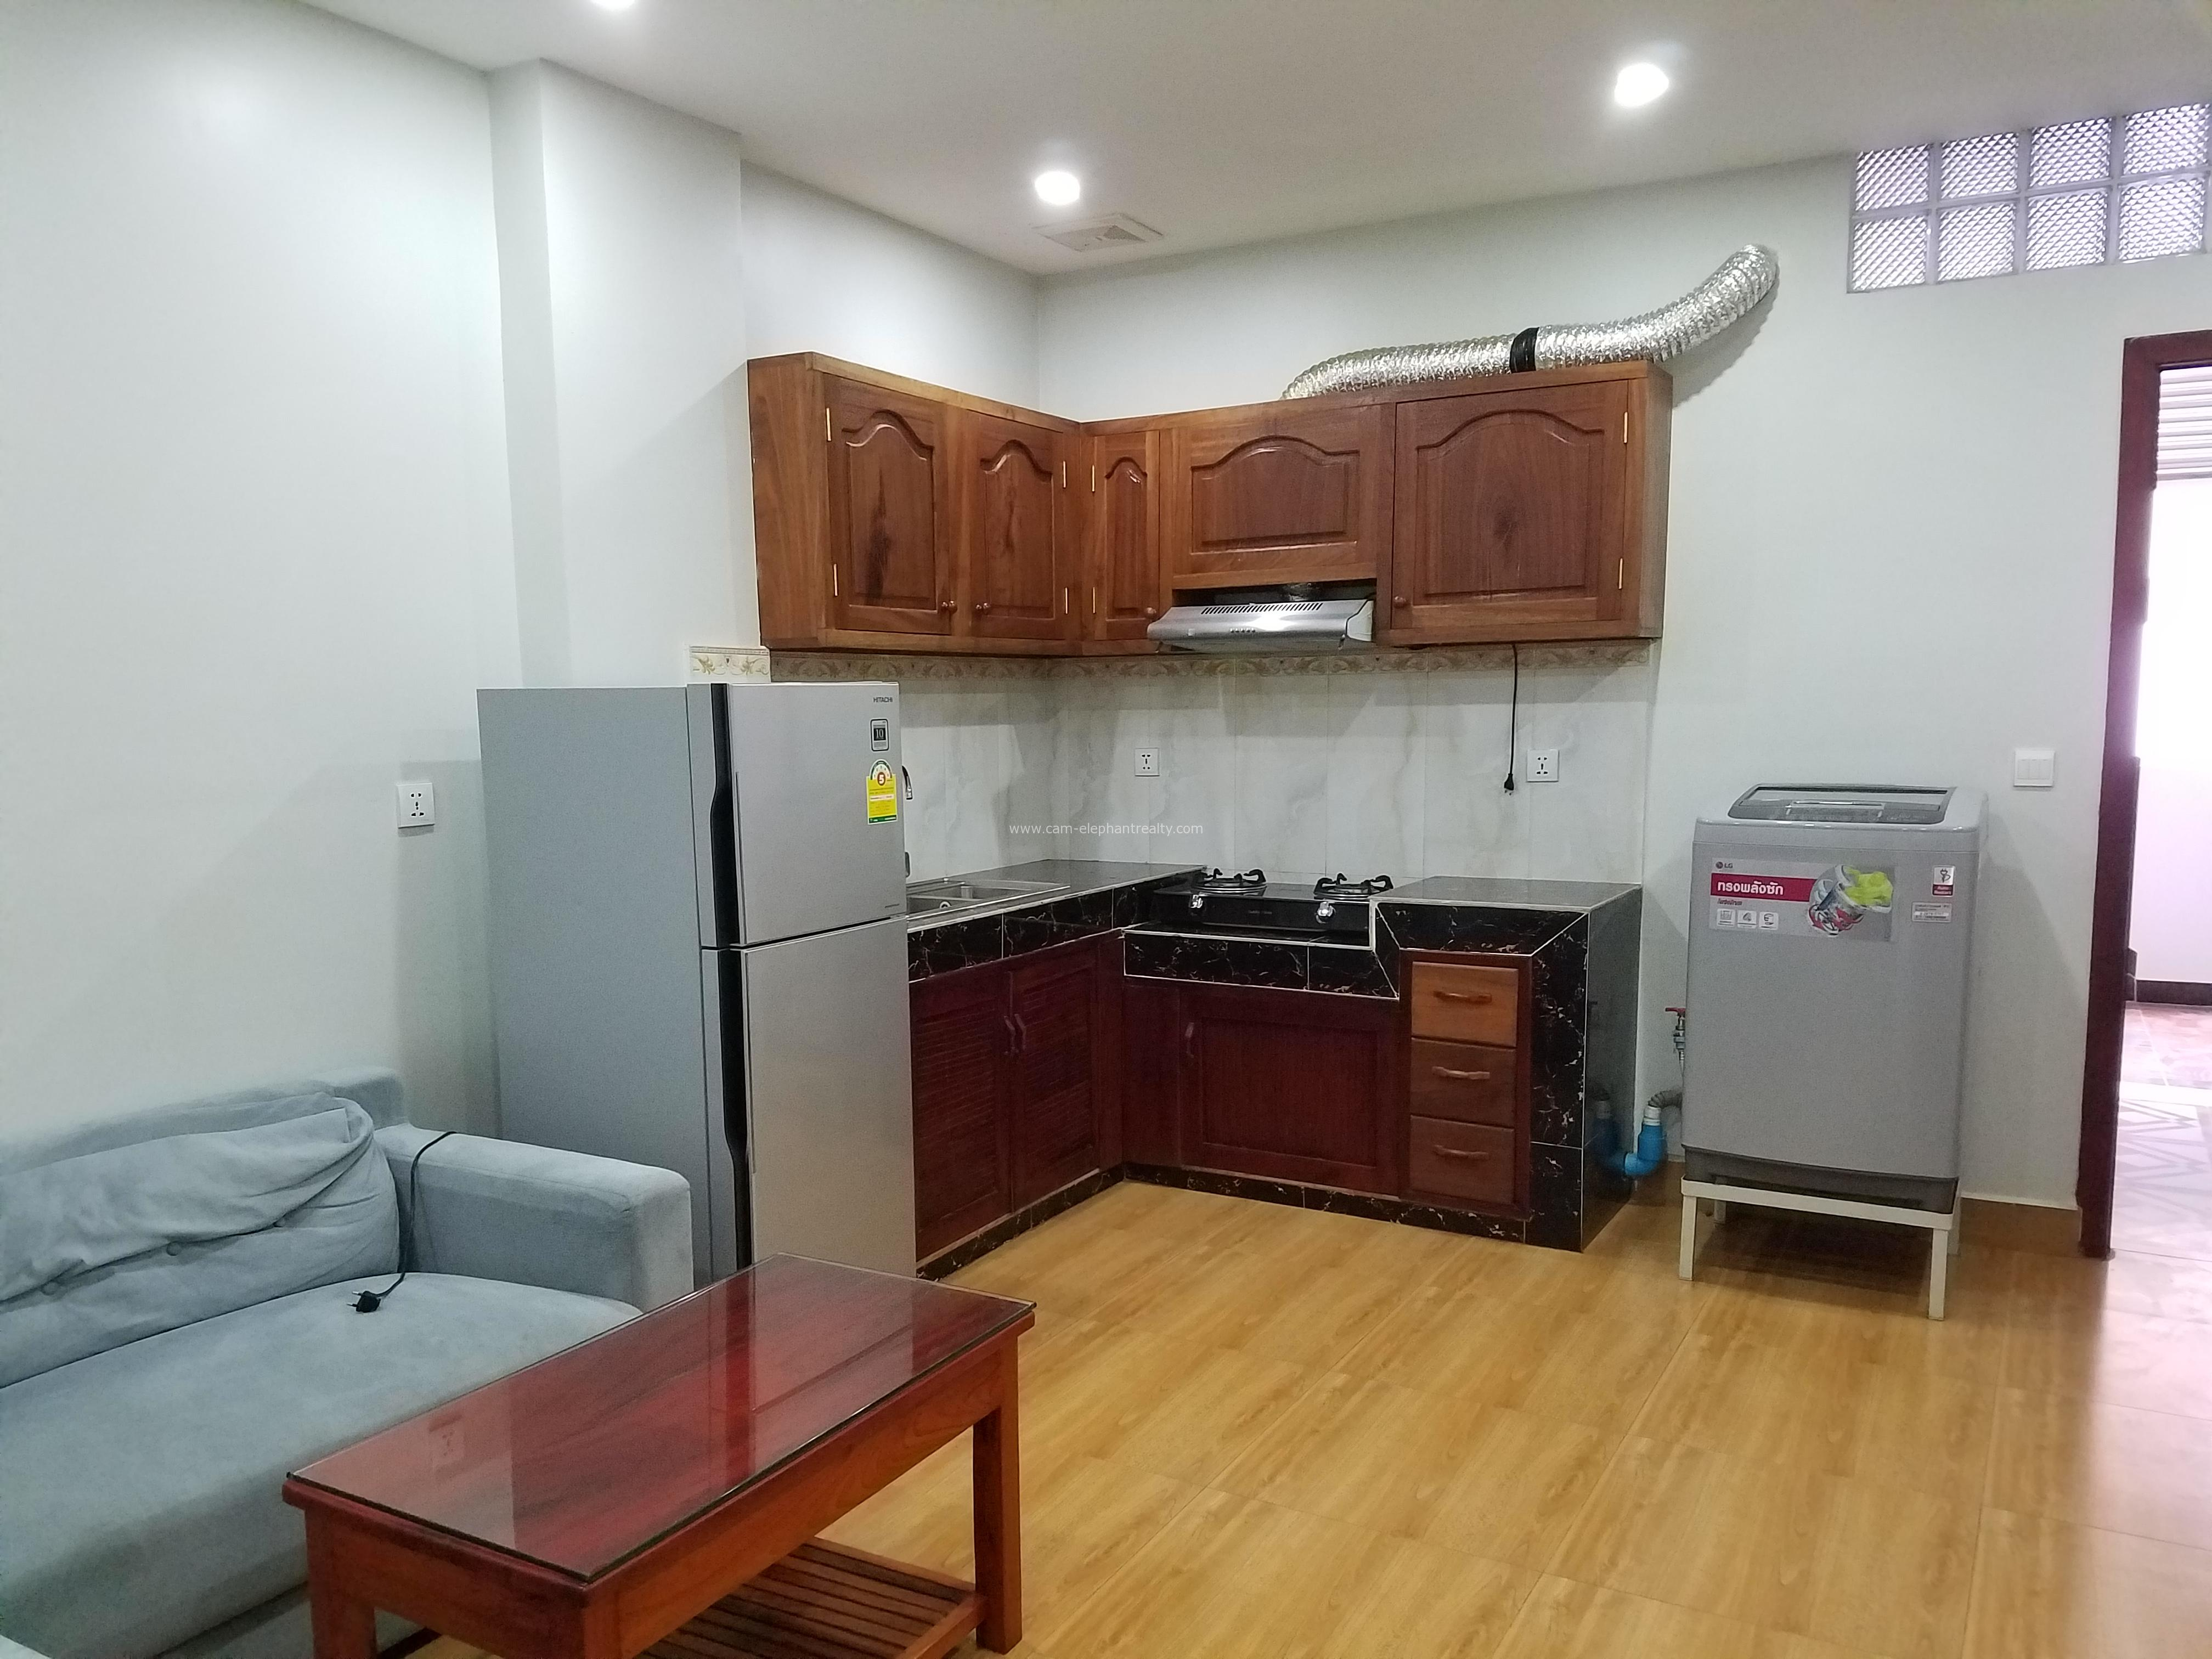 **elevator Western Apartment 2Bedroom+3baths $450/month Russian Market